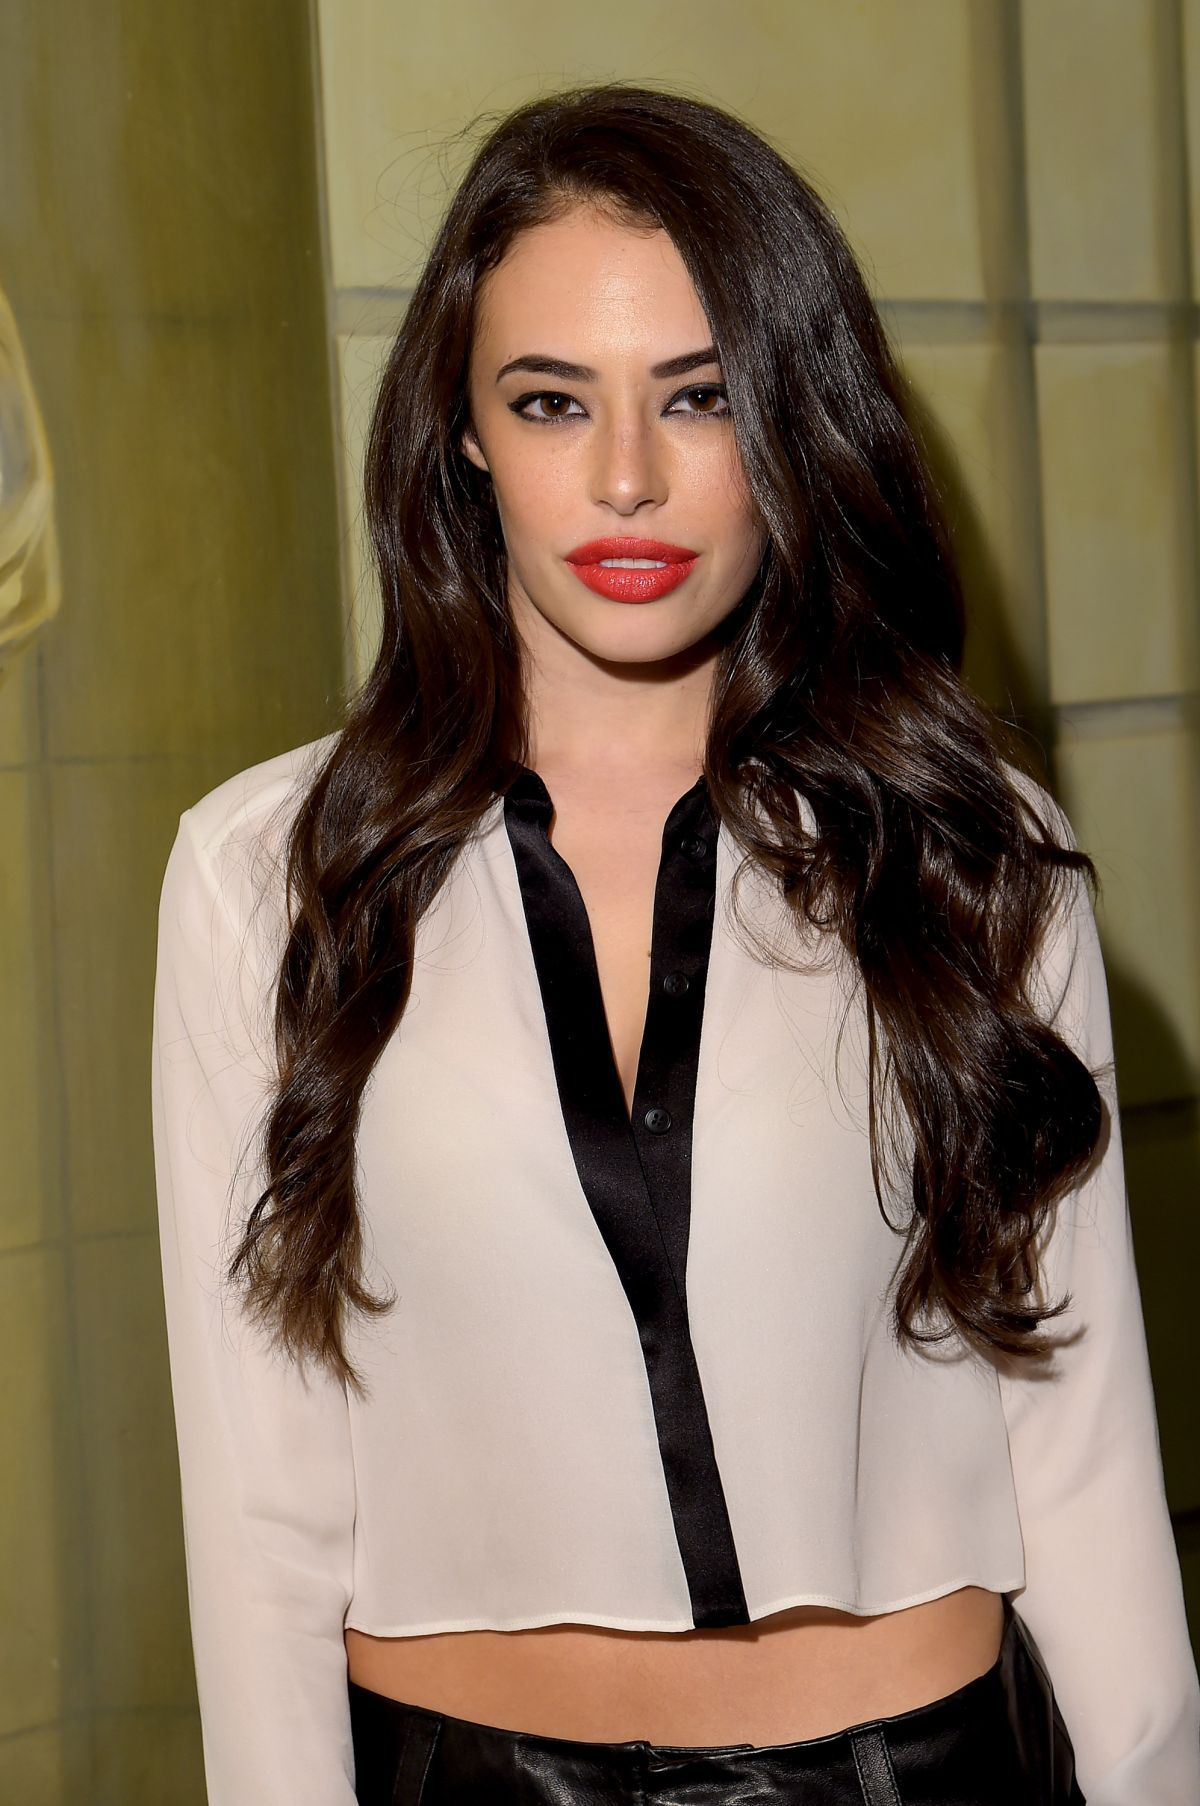 chloe bridges wikichloe bridges gif, chloe bridges new girl, chloe bridges tumblr, chloe bridges wikipedia, chloe bridges imdb, chloe bridges gallery, chloe bridges wdw, chloe bridges wiki, chloe bridges instagram, chloe bridges and andy devine, chloe bridges insta, chloe bridges swimsuit, chloe bridges, chloe bridges and adam devine, chloe bridges pretty little liars, chloe bridges boyfriend, chloe bridges movies, chloe bridges plastic surgery, chloe bridges and josh hutcherson, chloe bridges twitter